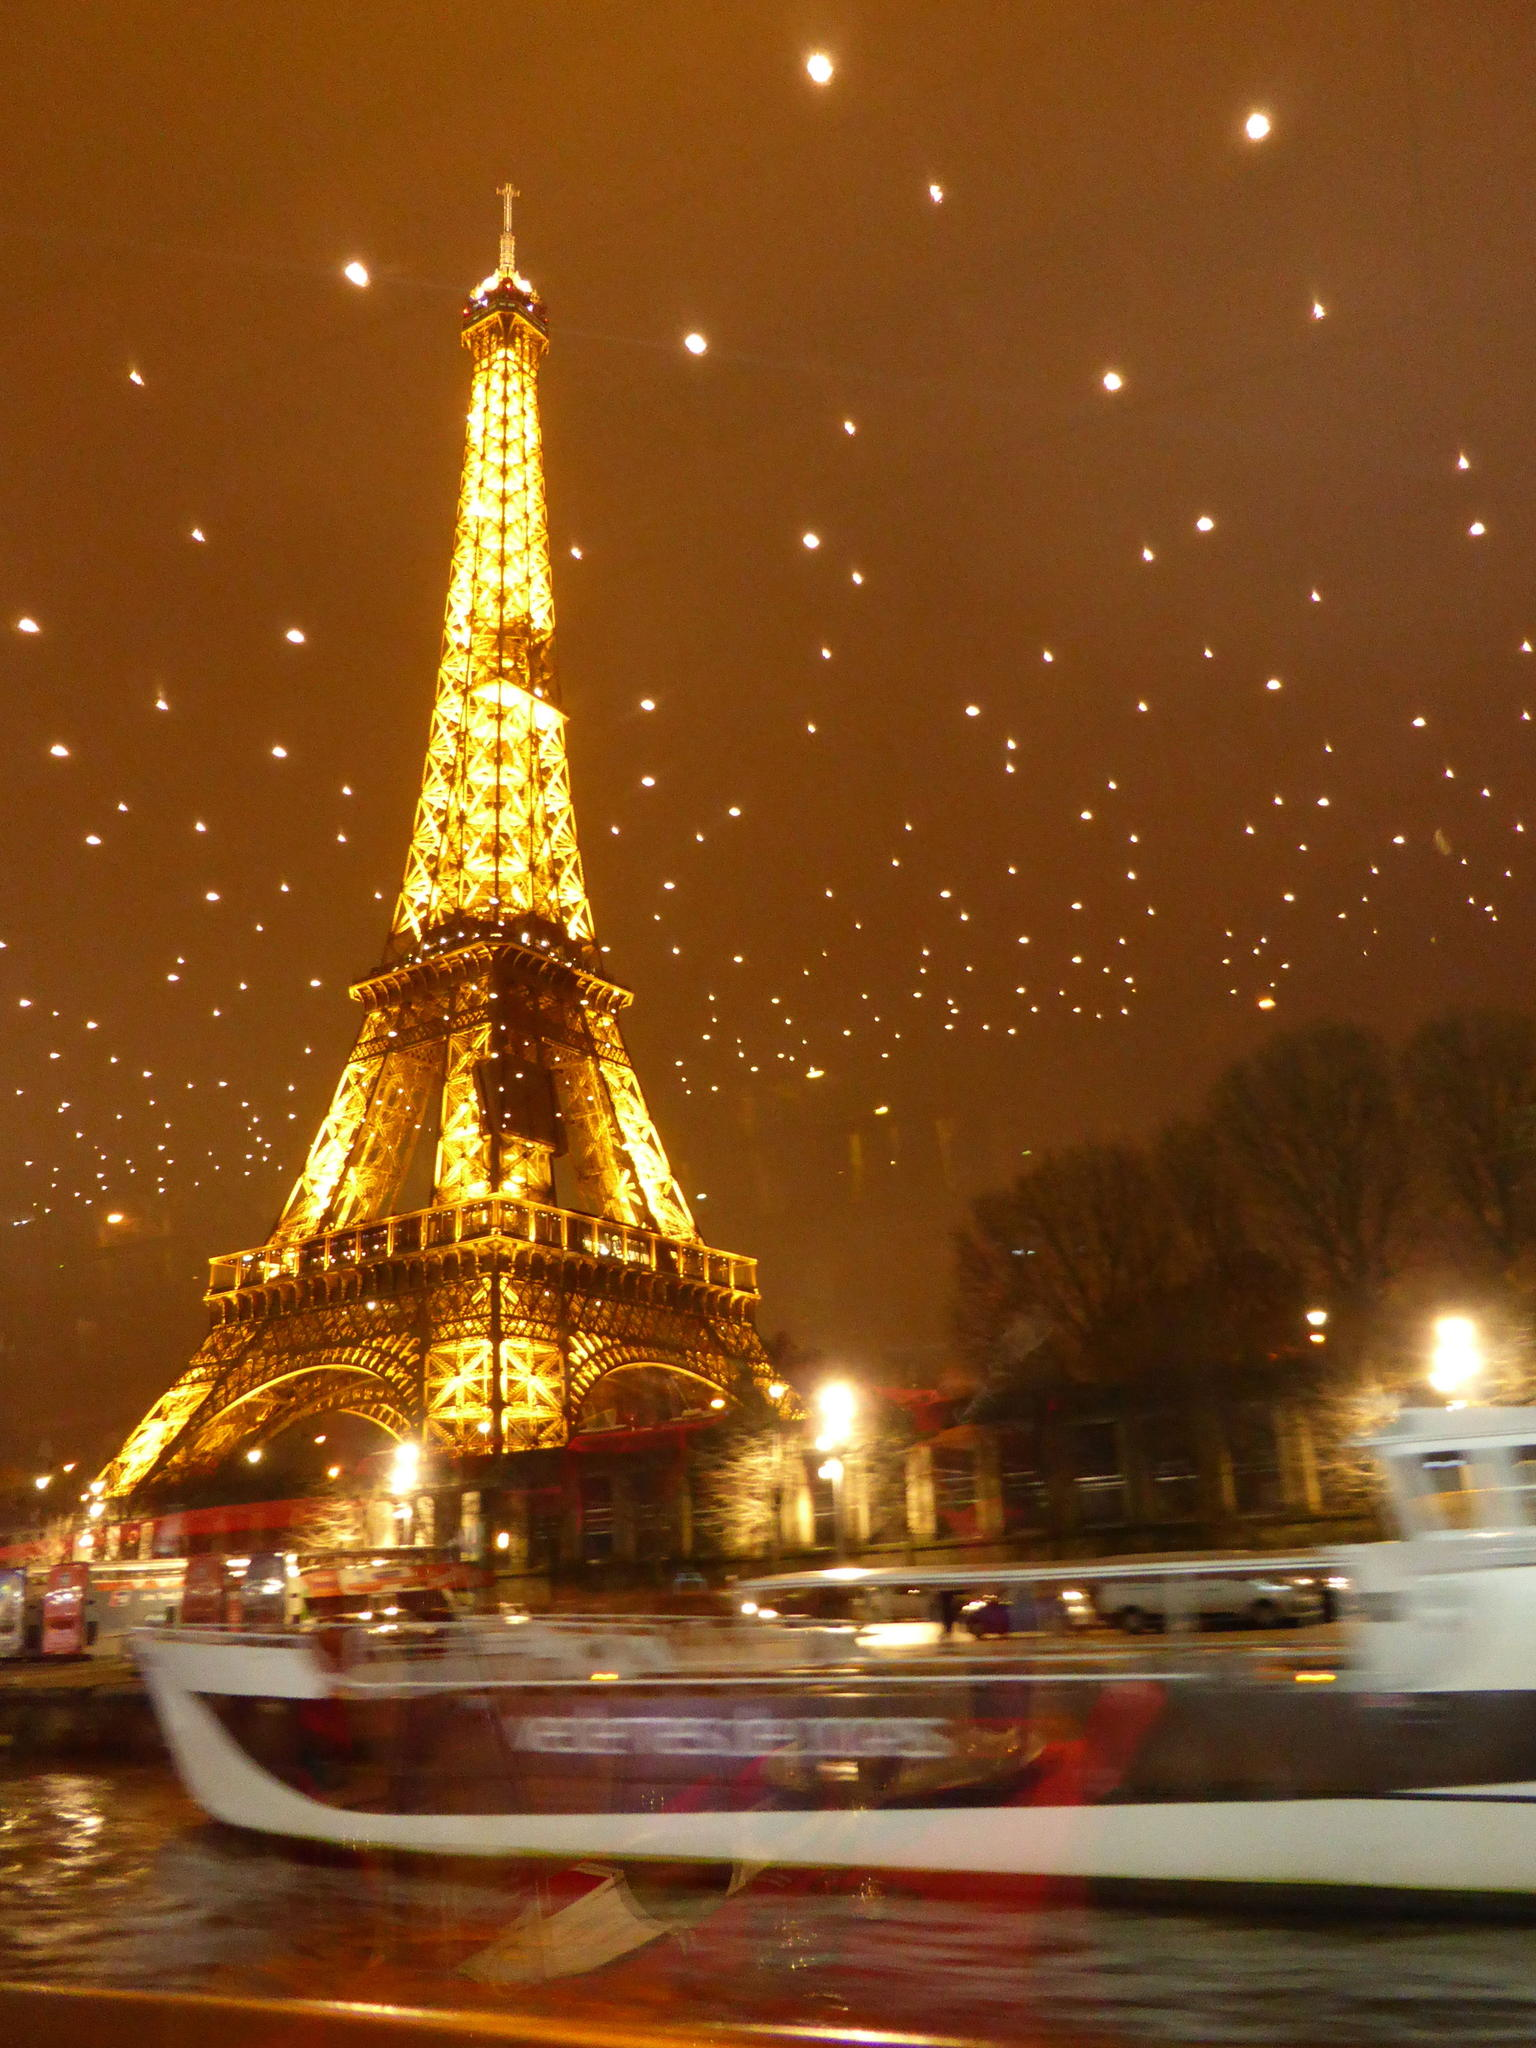 MORE PHOTOS, Bateaux Mouches Seine River Paris by Night Dinner Cruise with Live Music